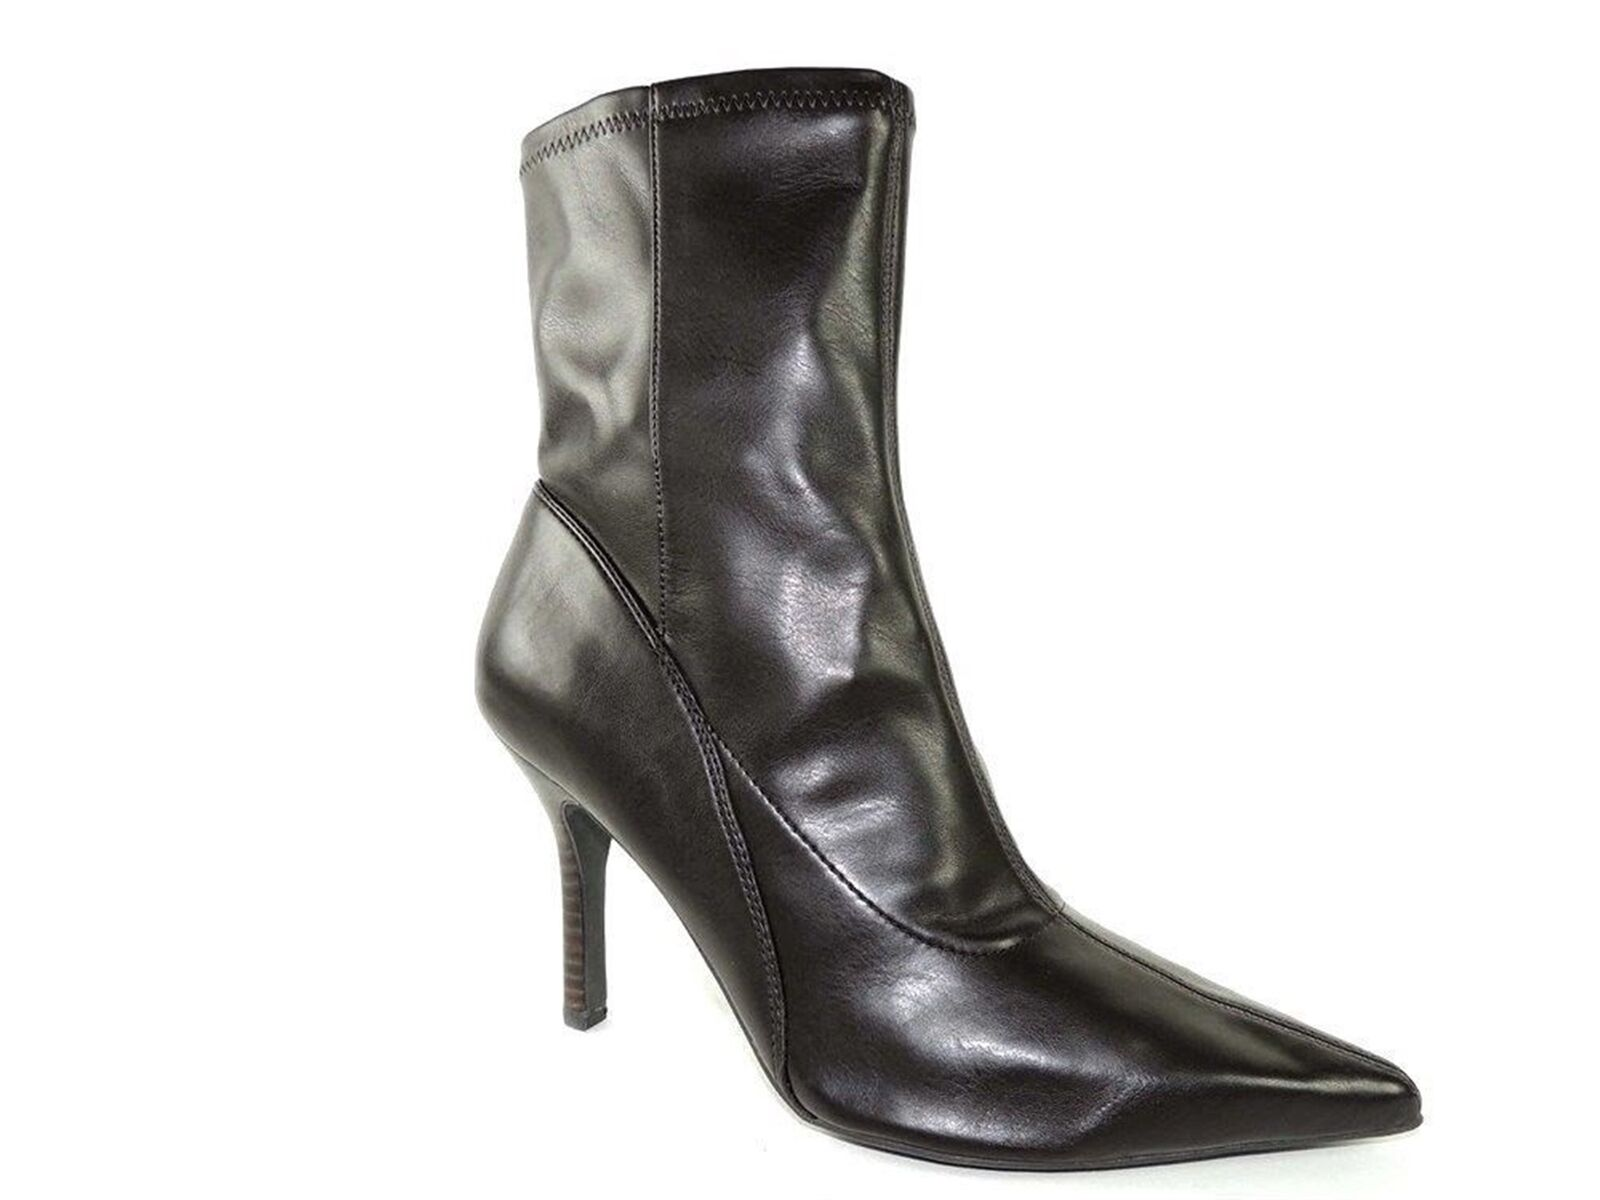 Nine West Women's Barkley-R Fashion Ankle Boots Brown Size 8.5 Narrow (AA, N)